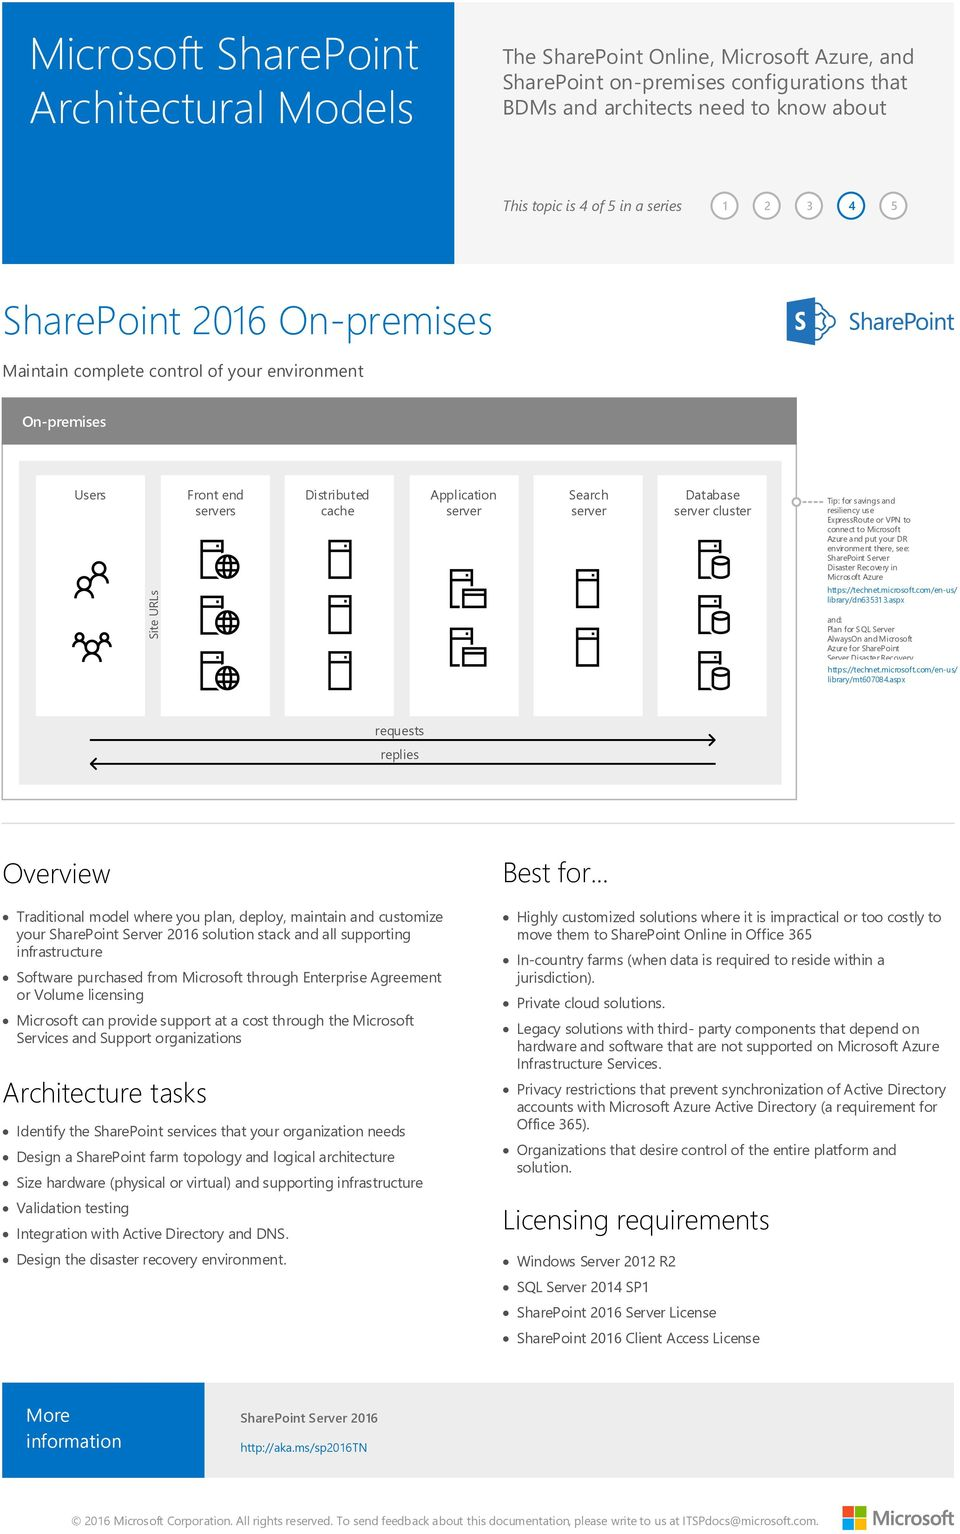 https://technet.microsoft.com/en-us/ library/dn635313.aspx and: Plan for SQL Server AlwaysOn and Microsoft Azure for SharePoint Server Disaster Recovery https://technet.microsoft.com/en-us/ library/mt607084.